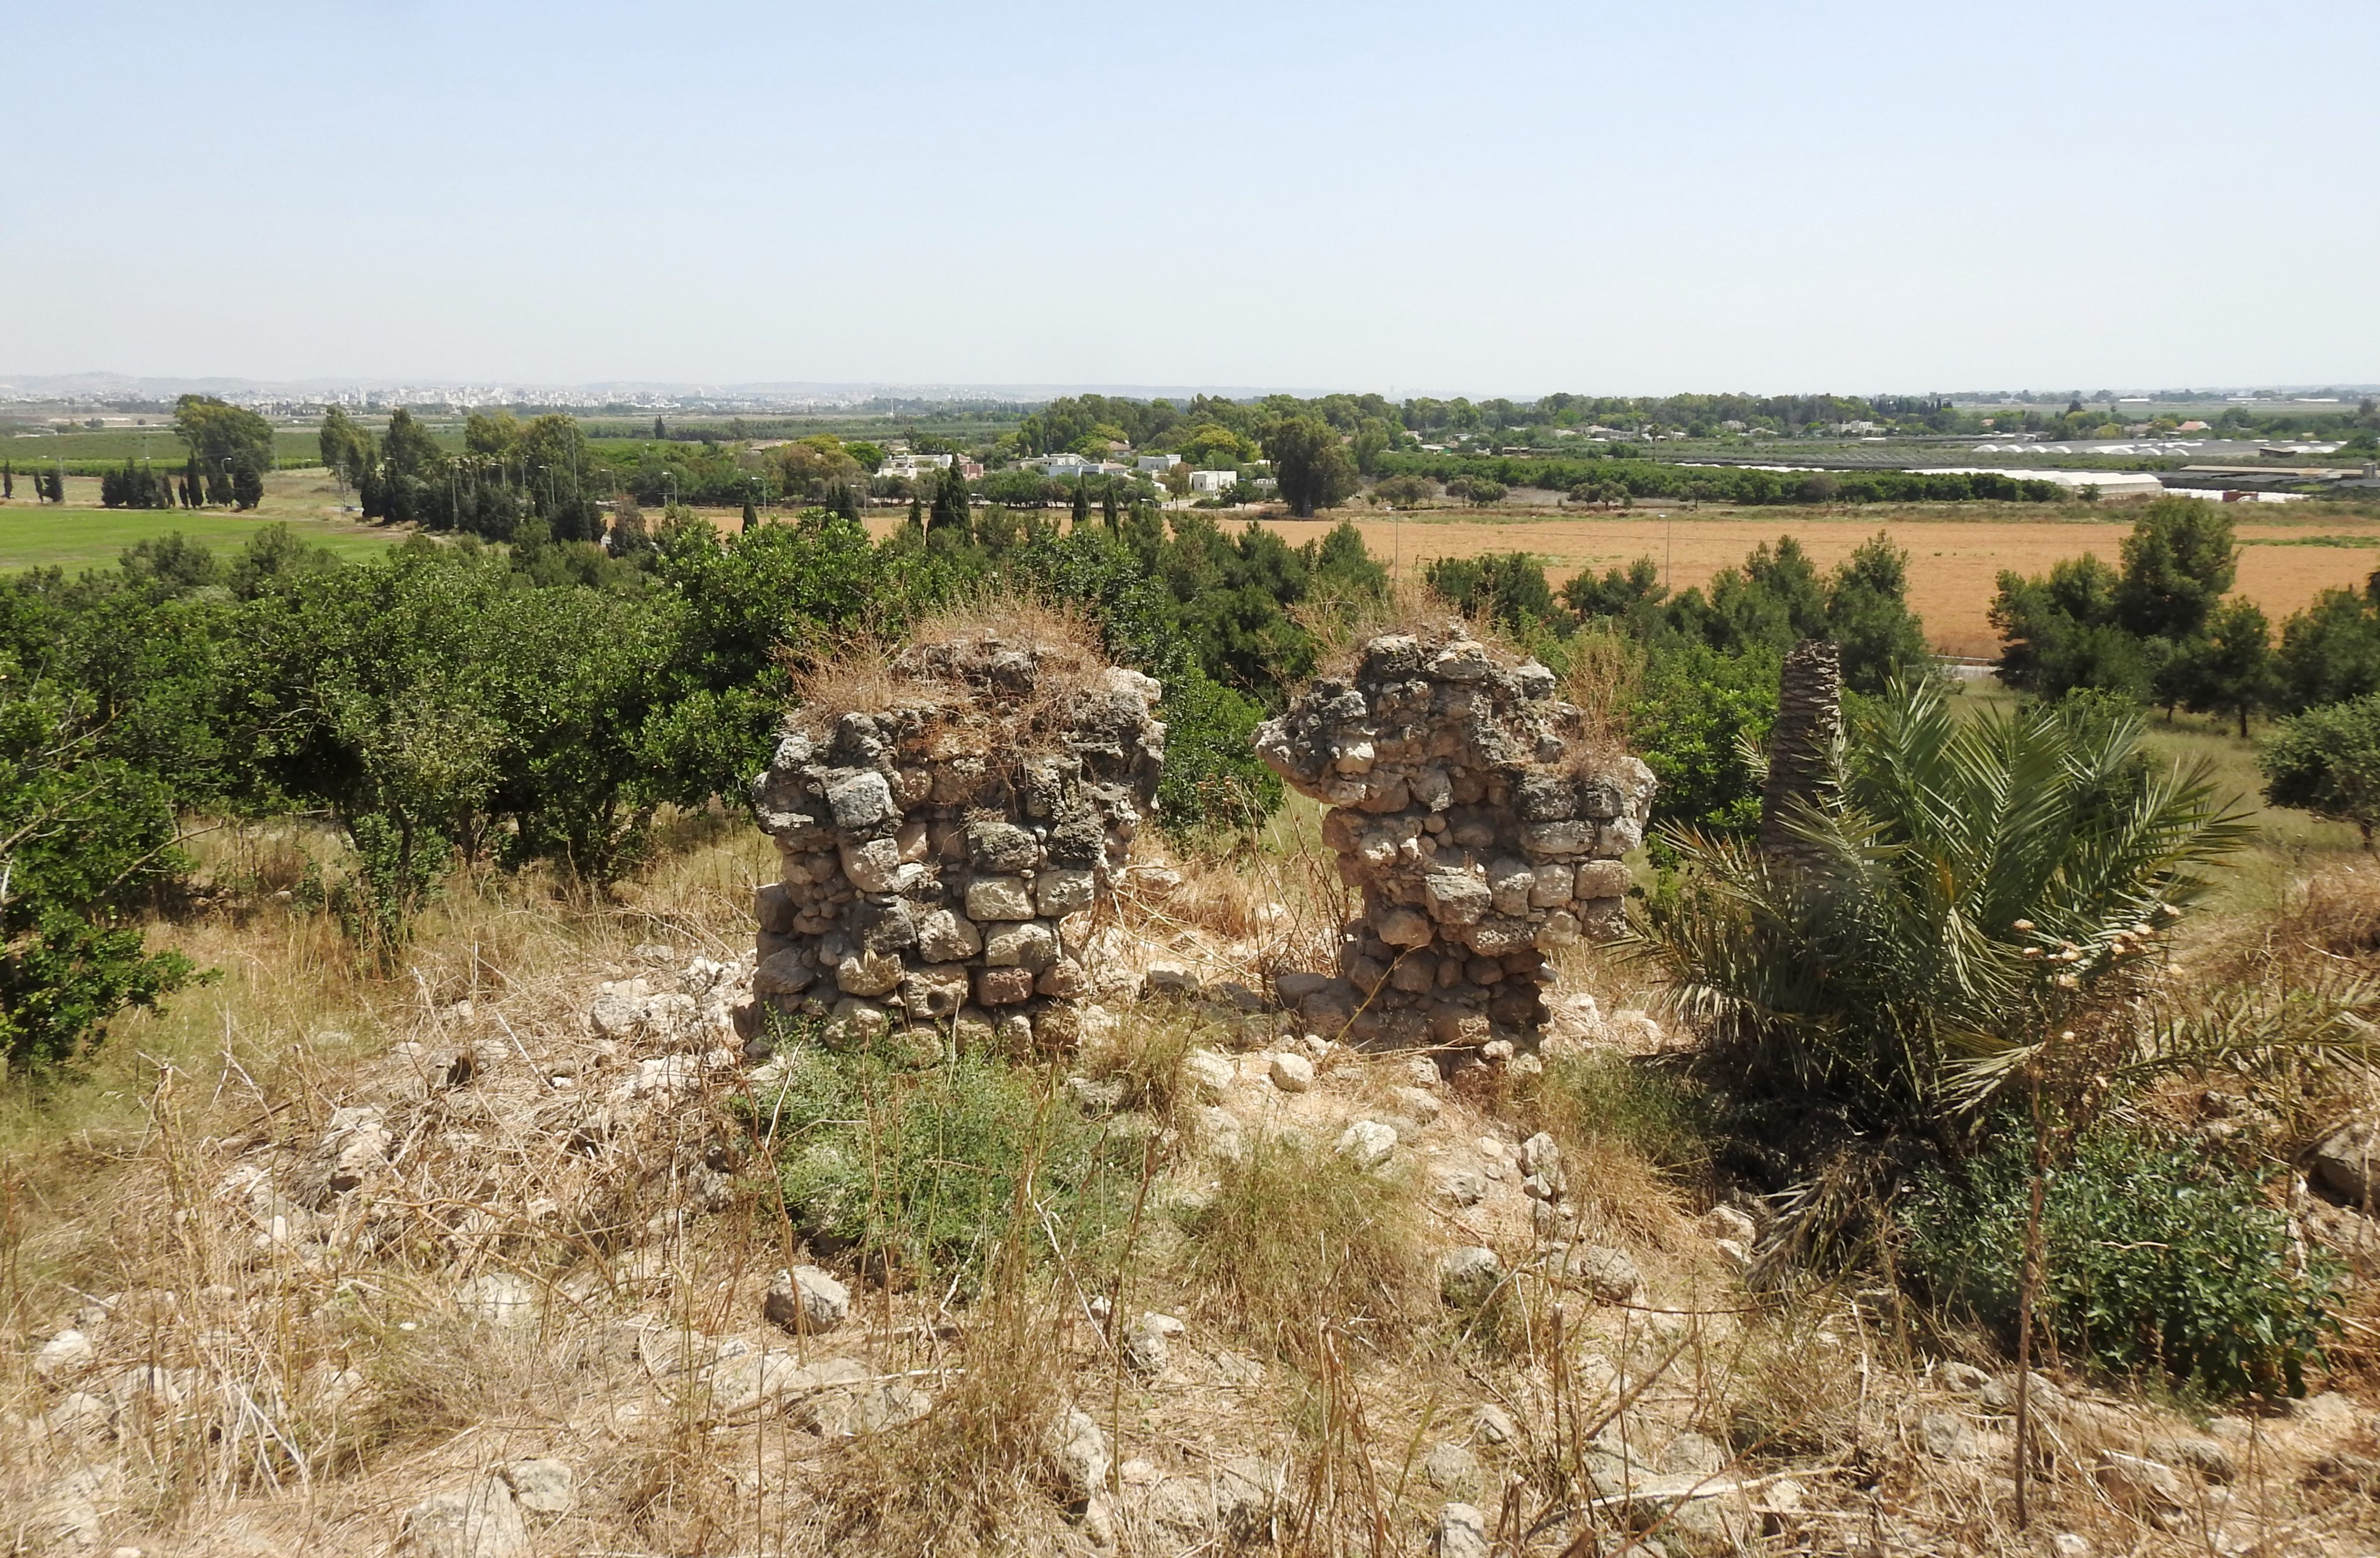 Remains of the fortress' outer walls